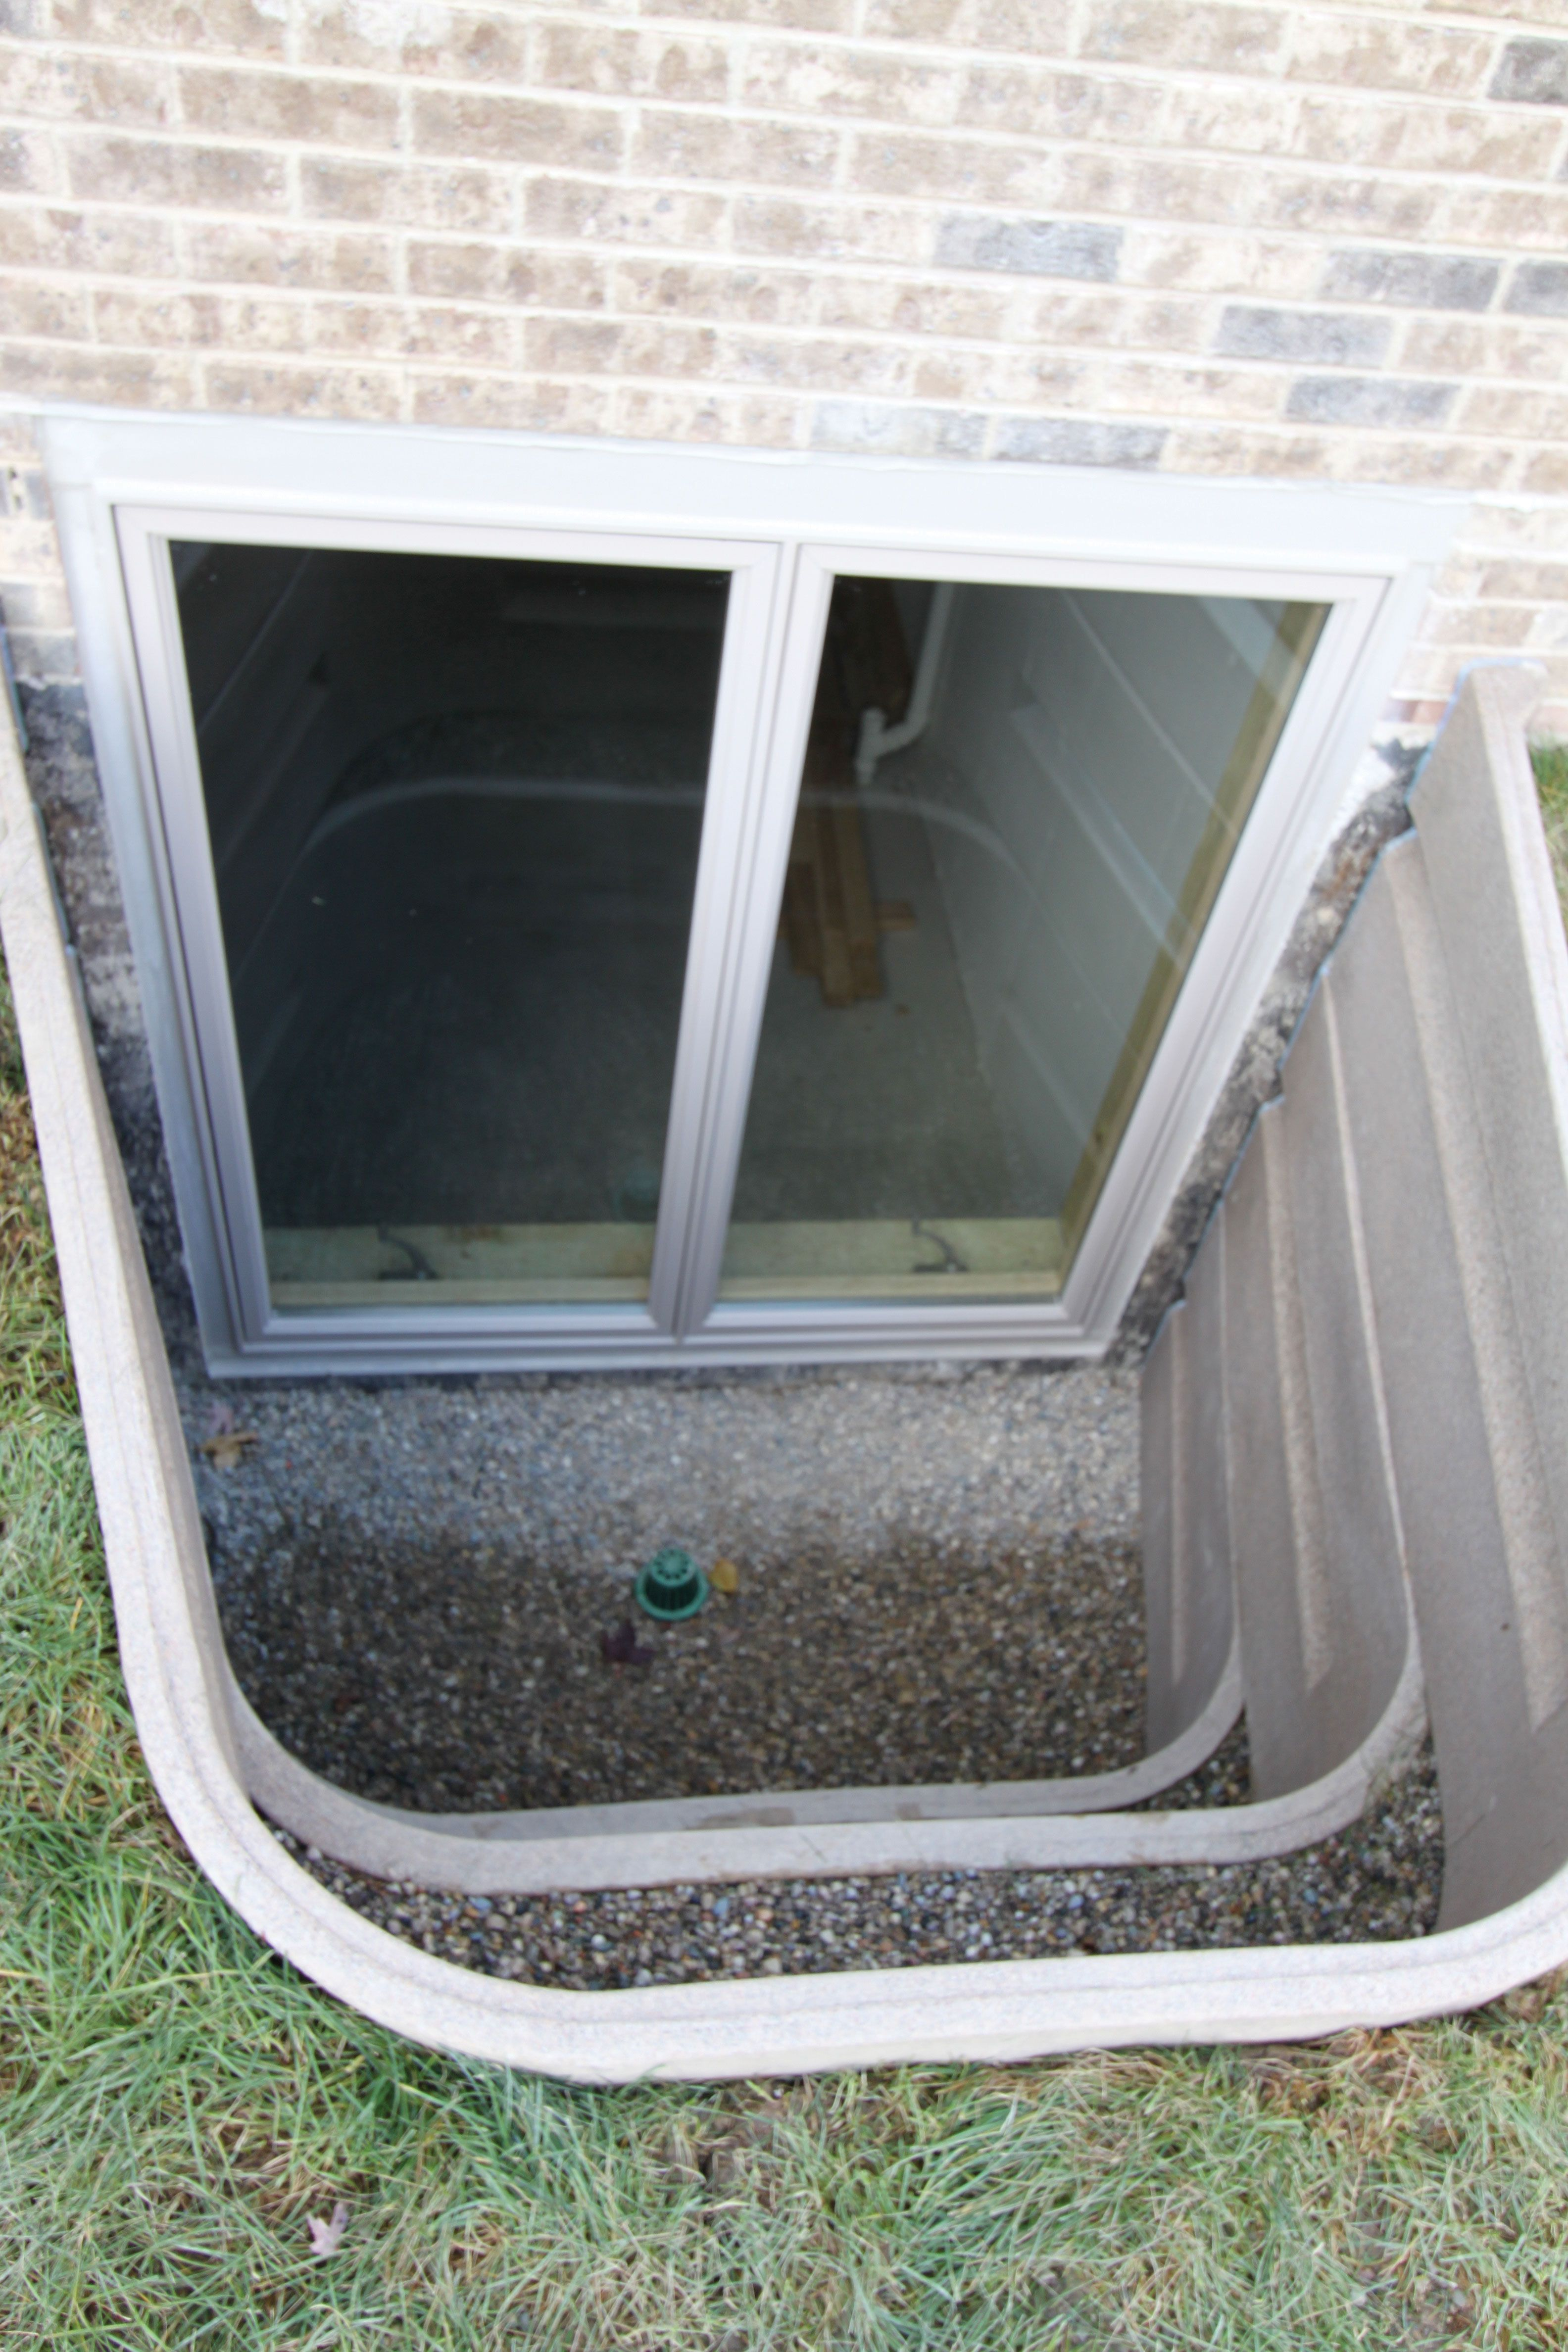 Egress window decor  musthave egress window and well for both light and safe escape